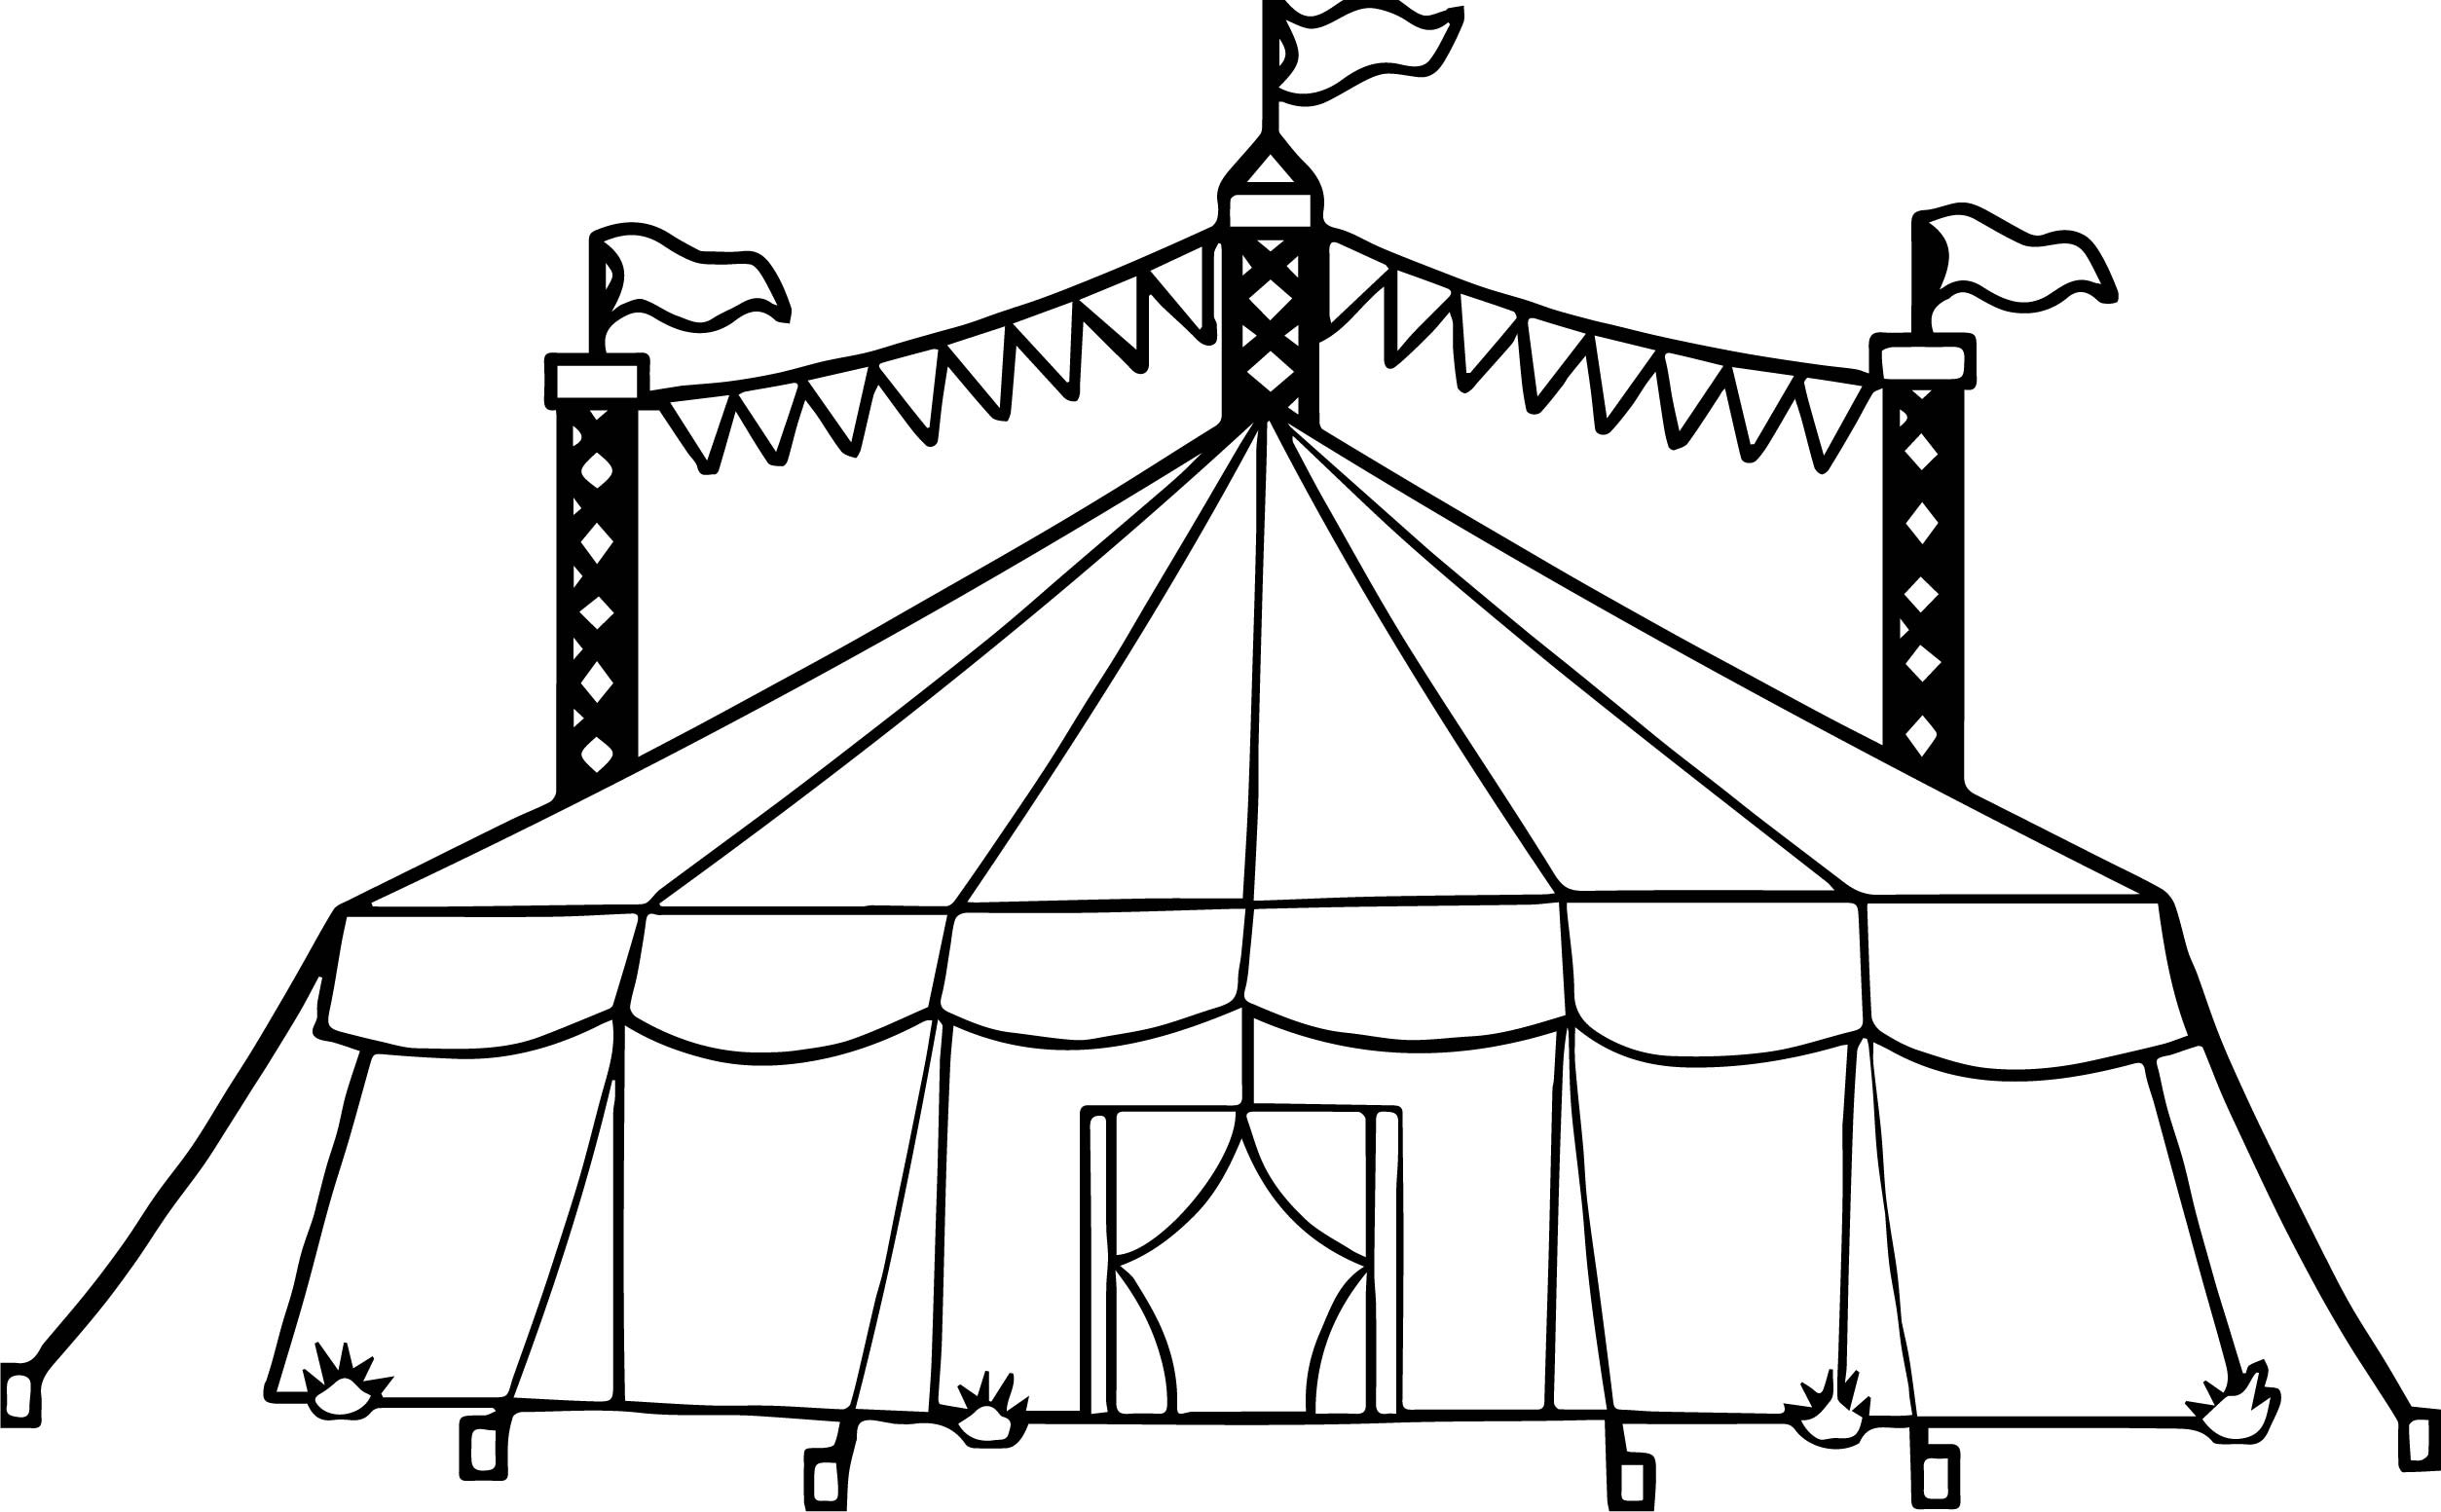 Circus Tent Coloring Pages at GetDrawings.com | Free for ...